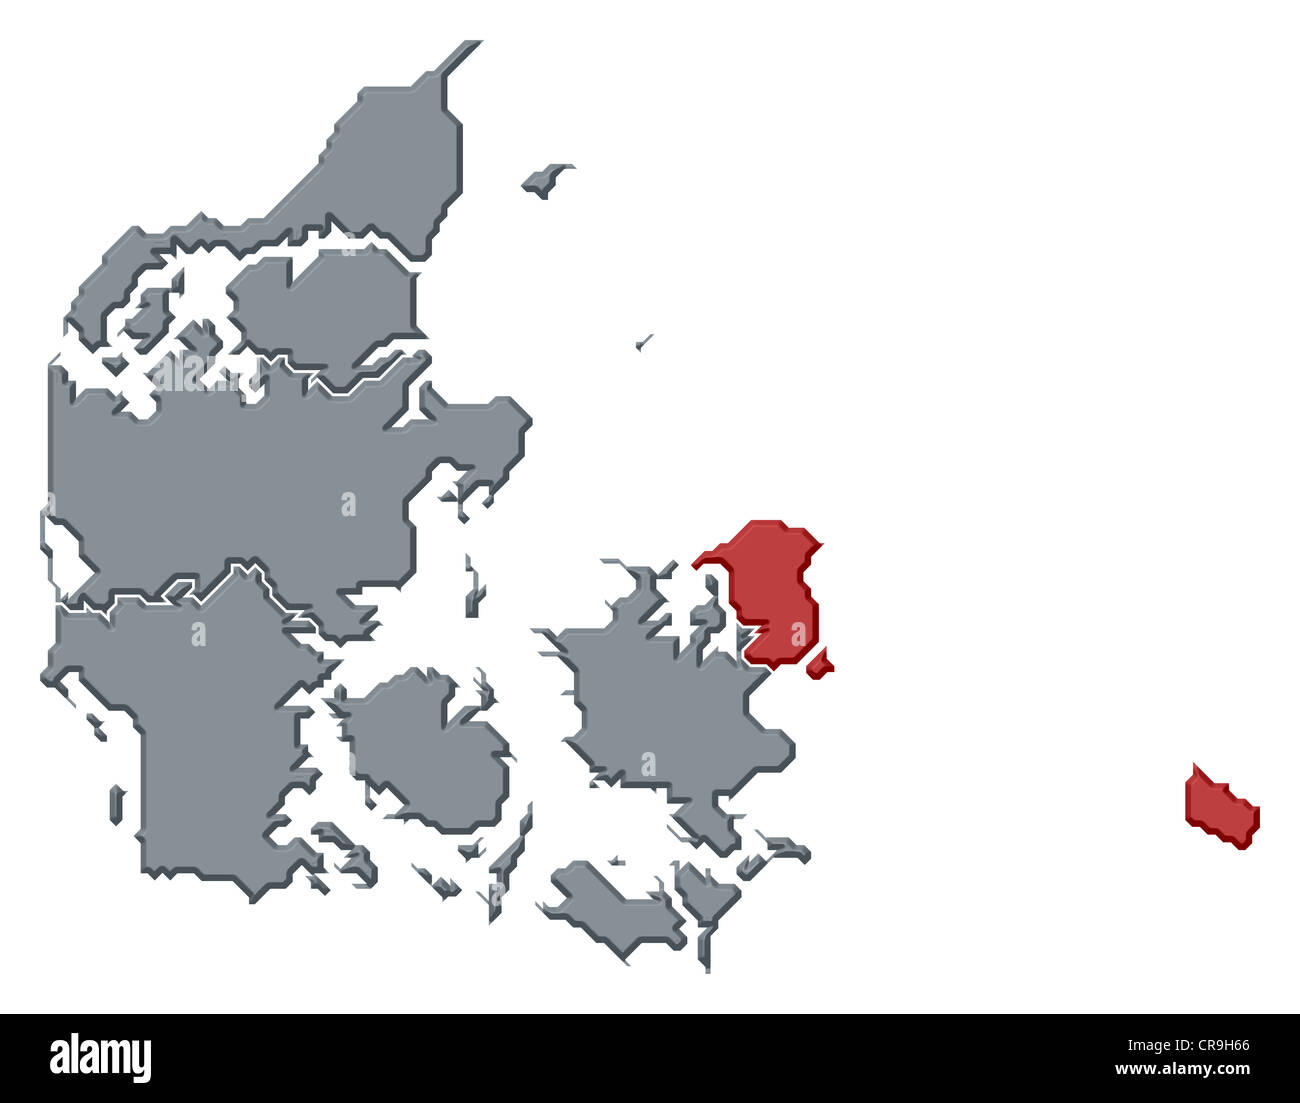 Political map of Danmark with the several regions where Capital Region is highlighted. - Stock Image